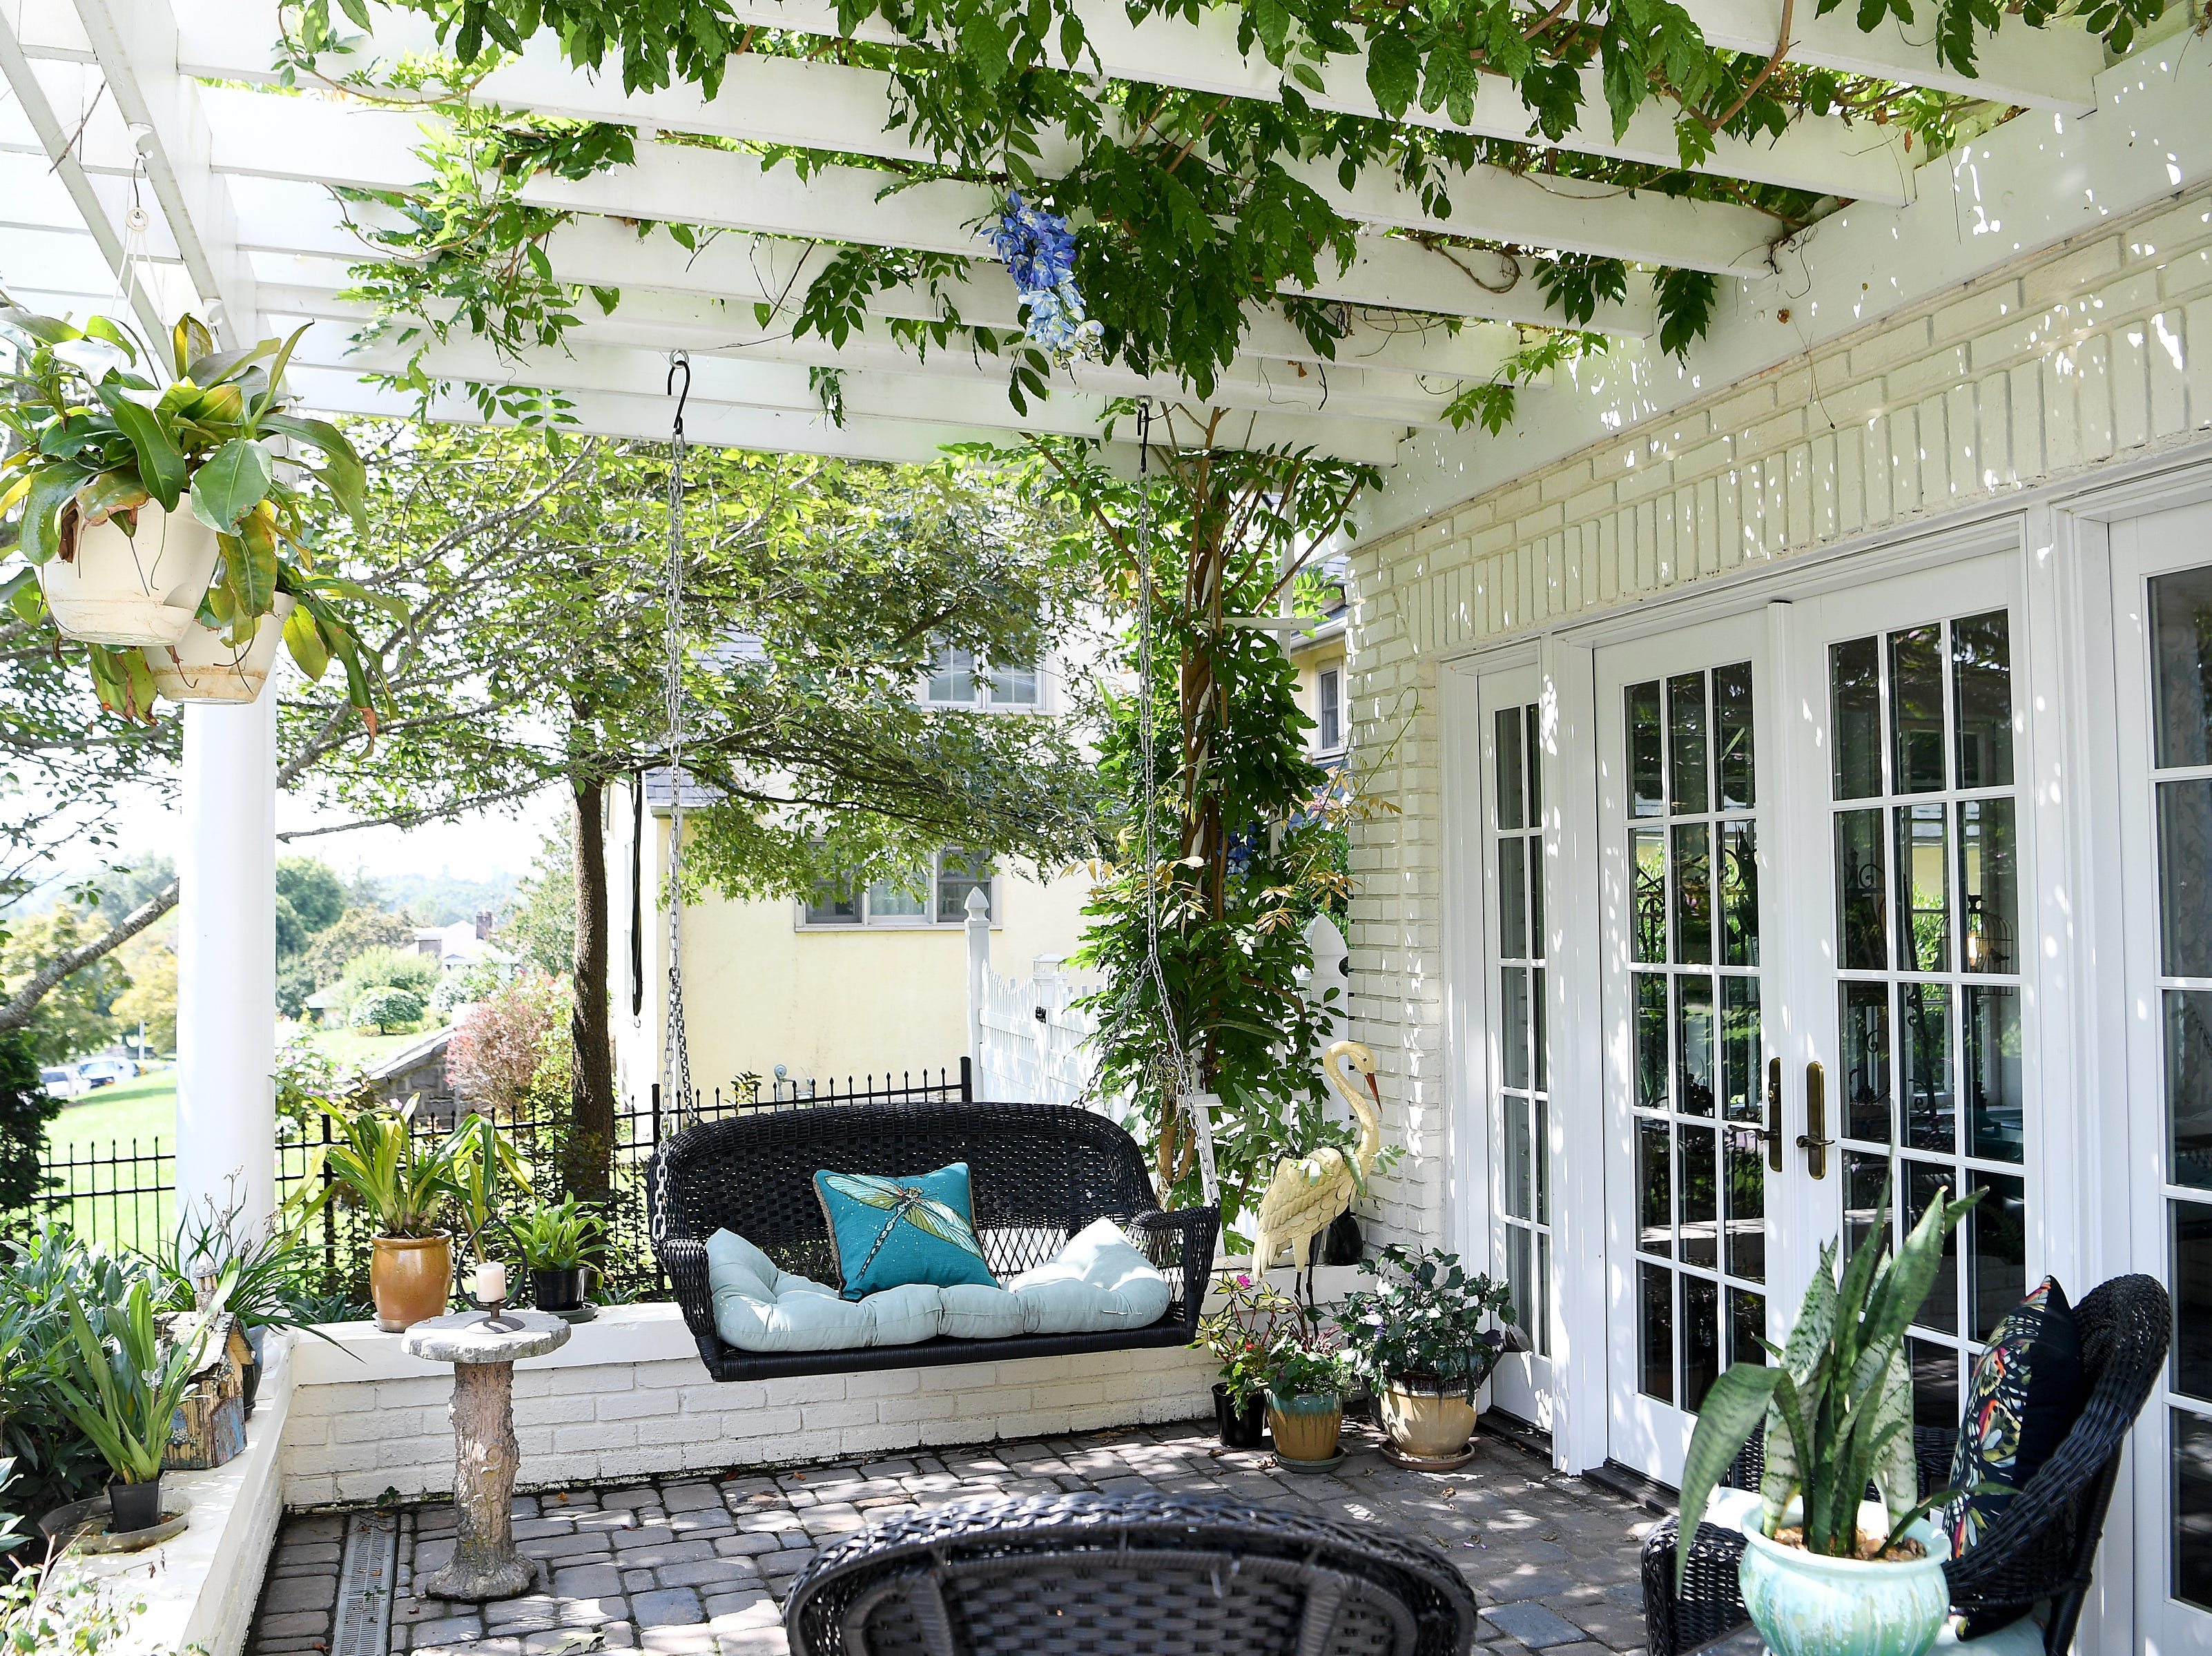 The front porch of the Bryant family's home in North Asheville features seating and wisteria-covered roofing which gives a pop of purple when in bloom.